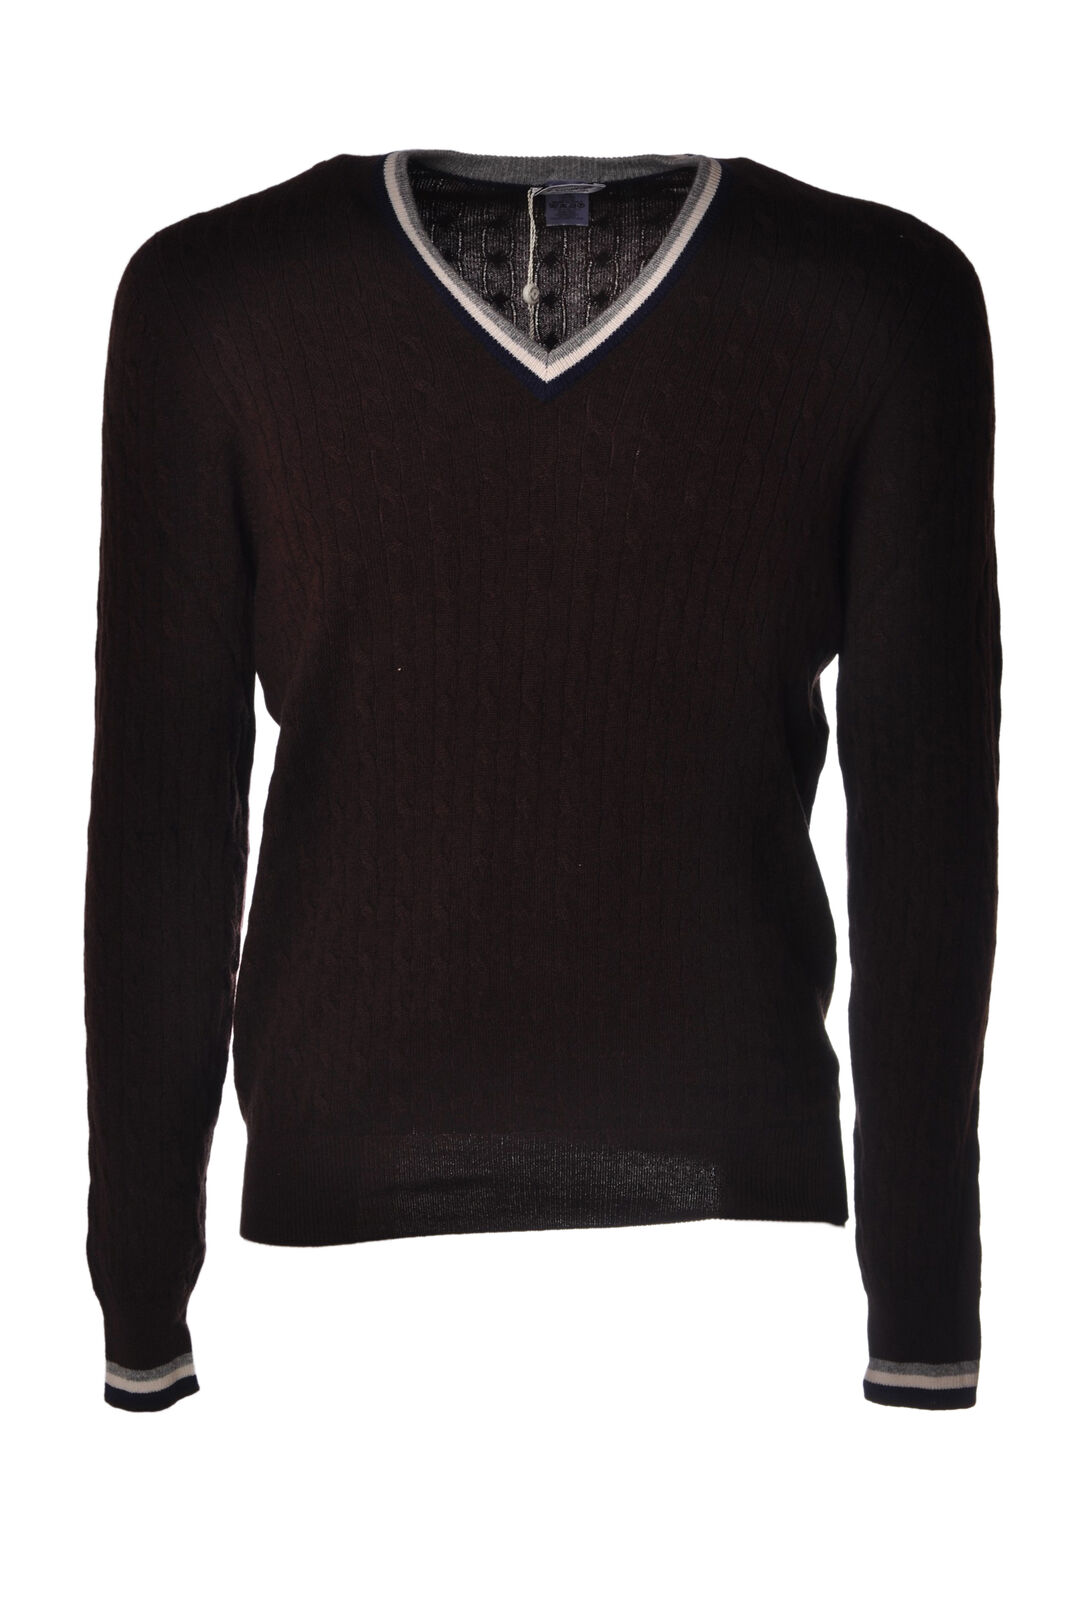 Viadeste  -  Sweaters - Male - Brown - 4682021A185243